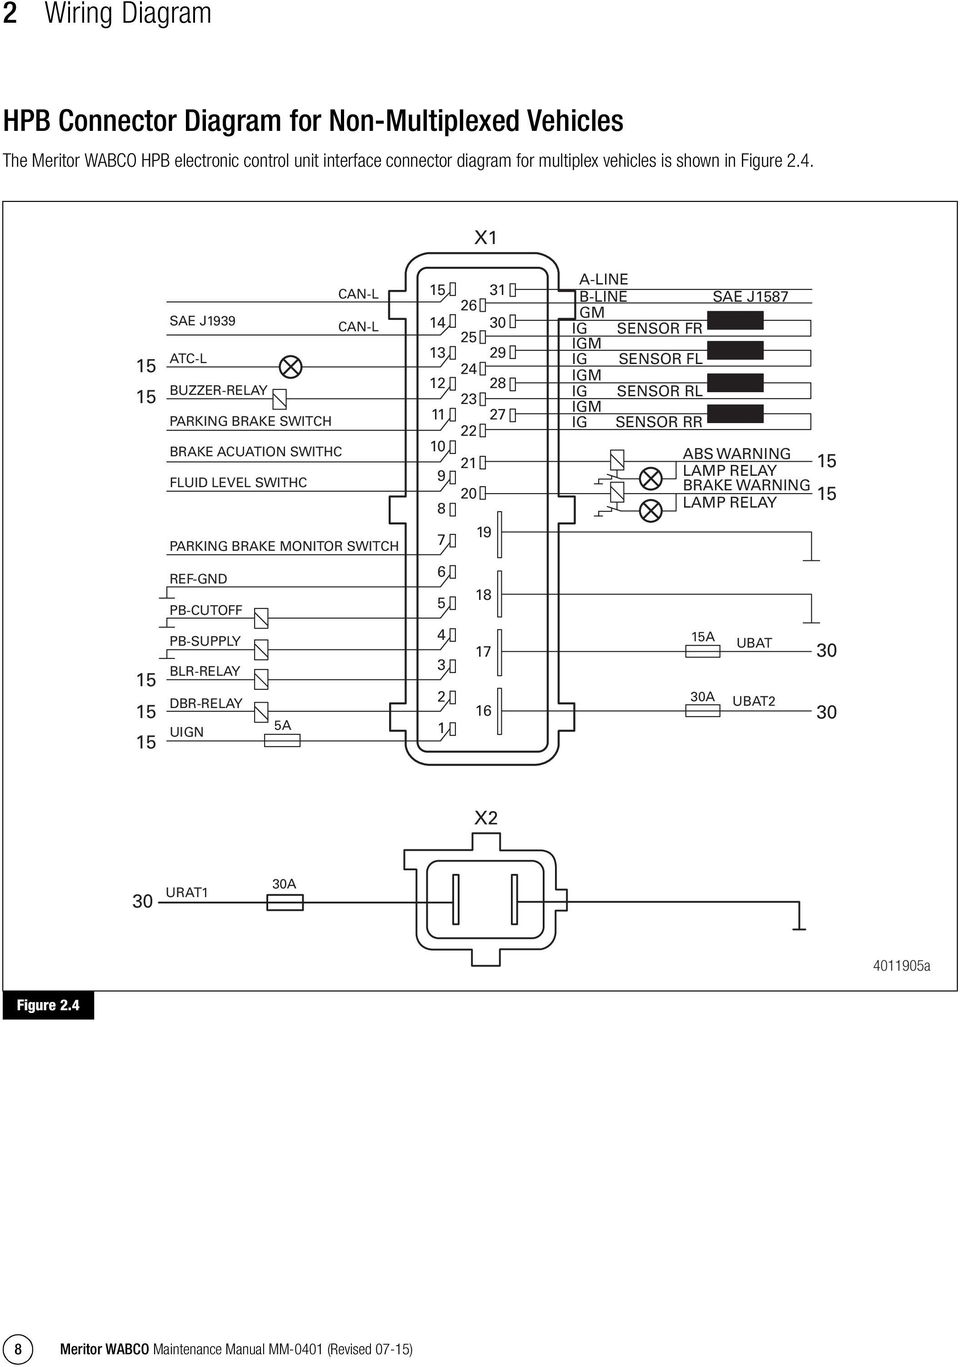 j1587 wiring diagram wiring diagrams schematics j1587 wiring diagram wiring  diagrams schematics j1939 data link cable